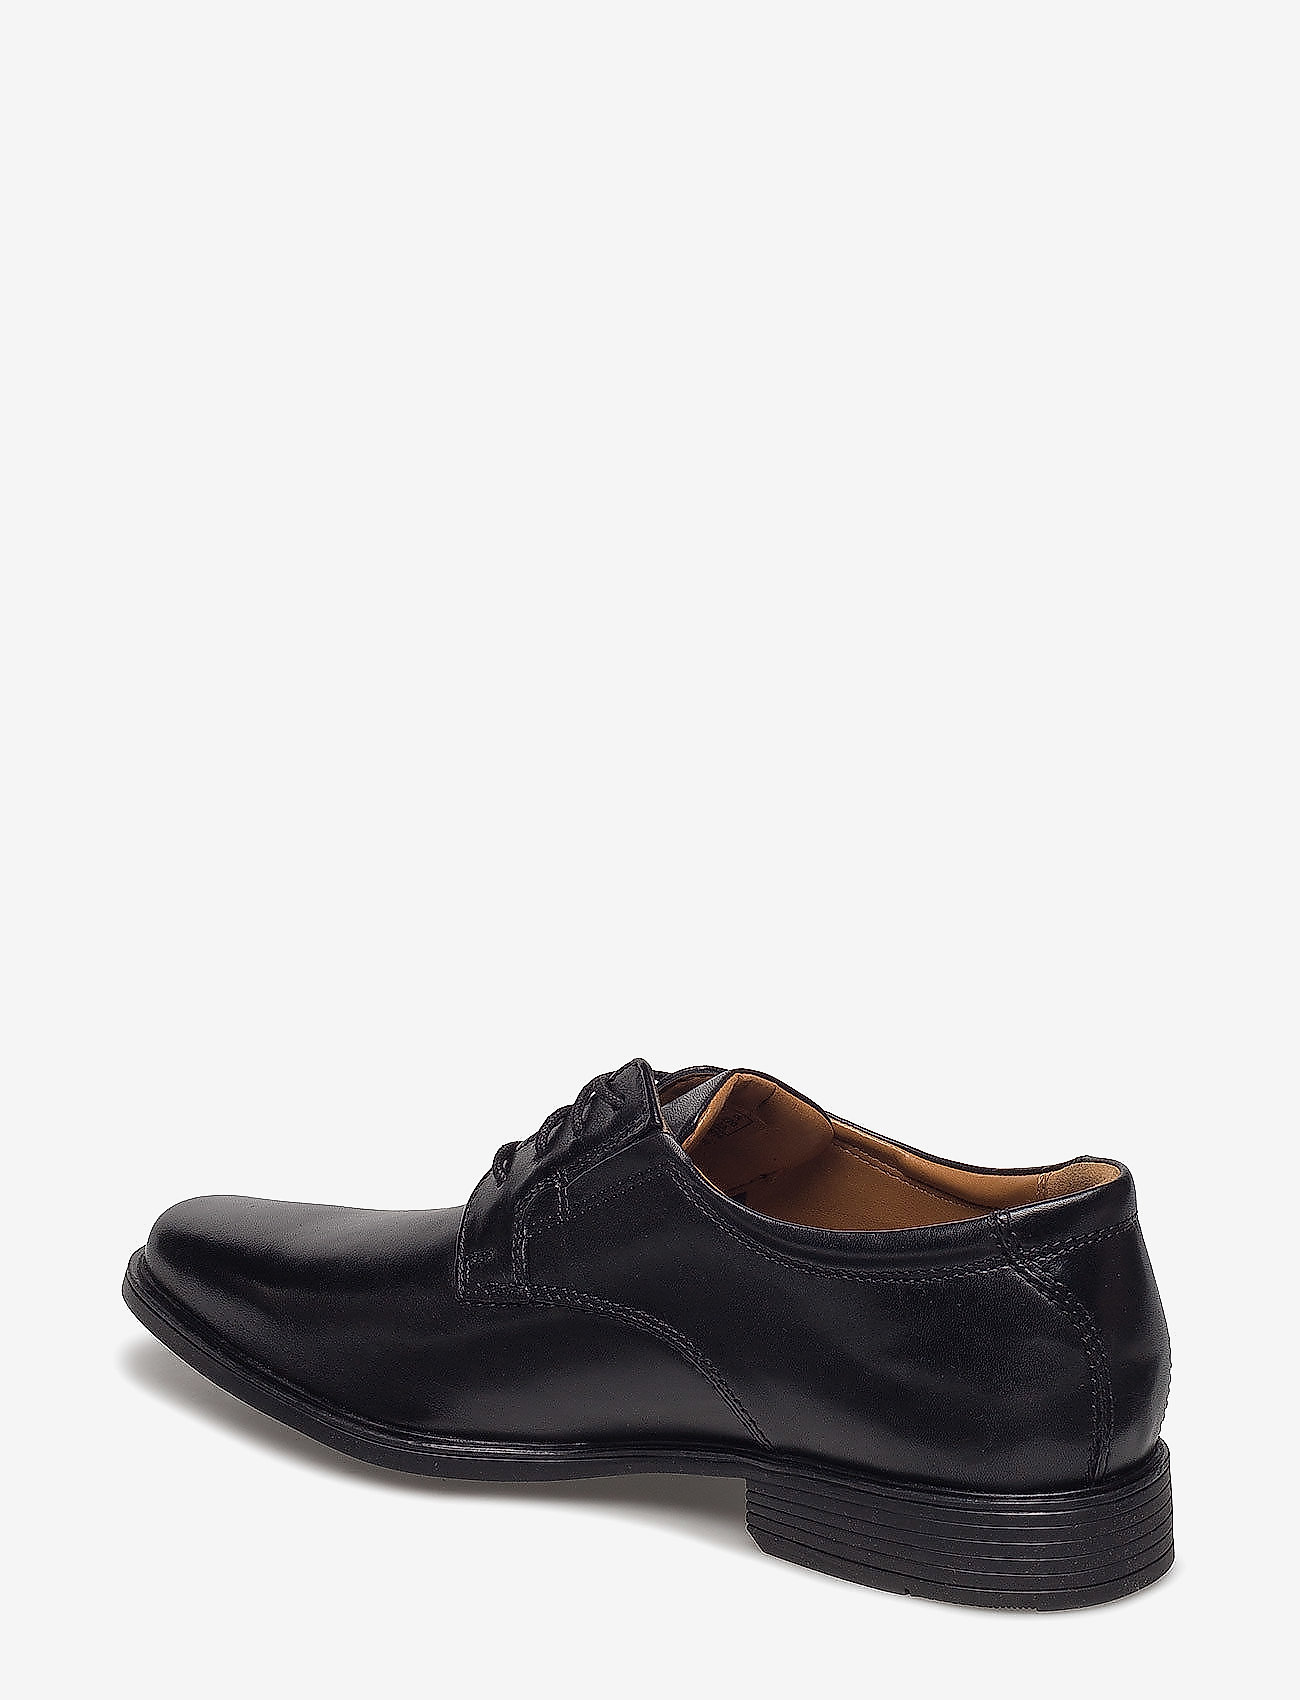 Clarks Tilden Plain - Business Black Leather